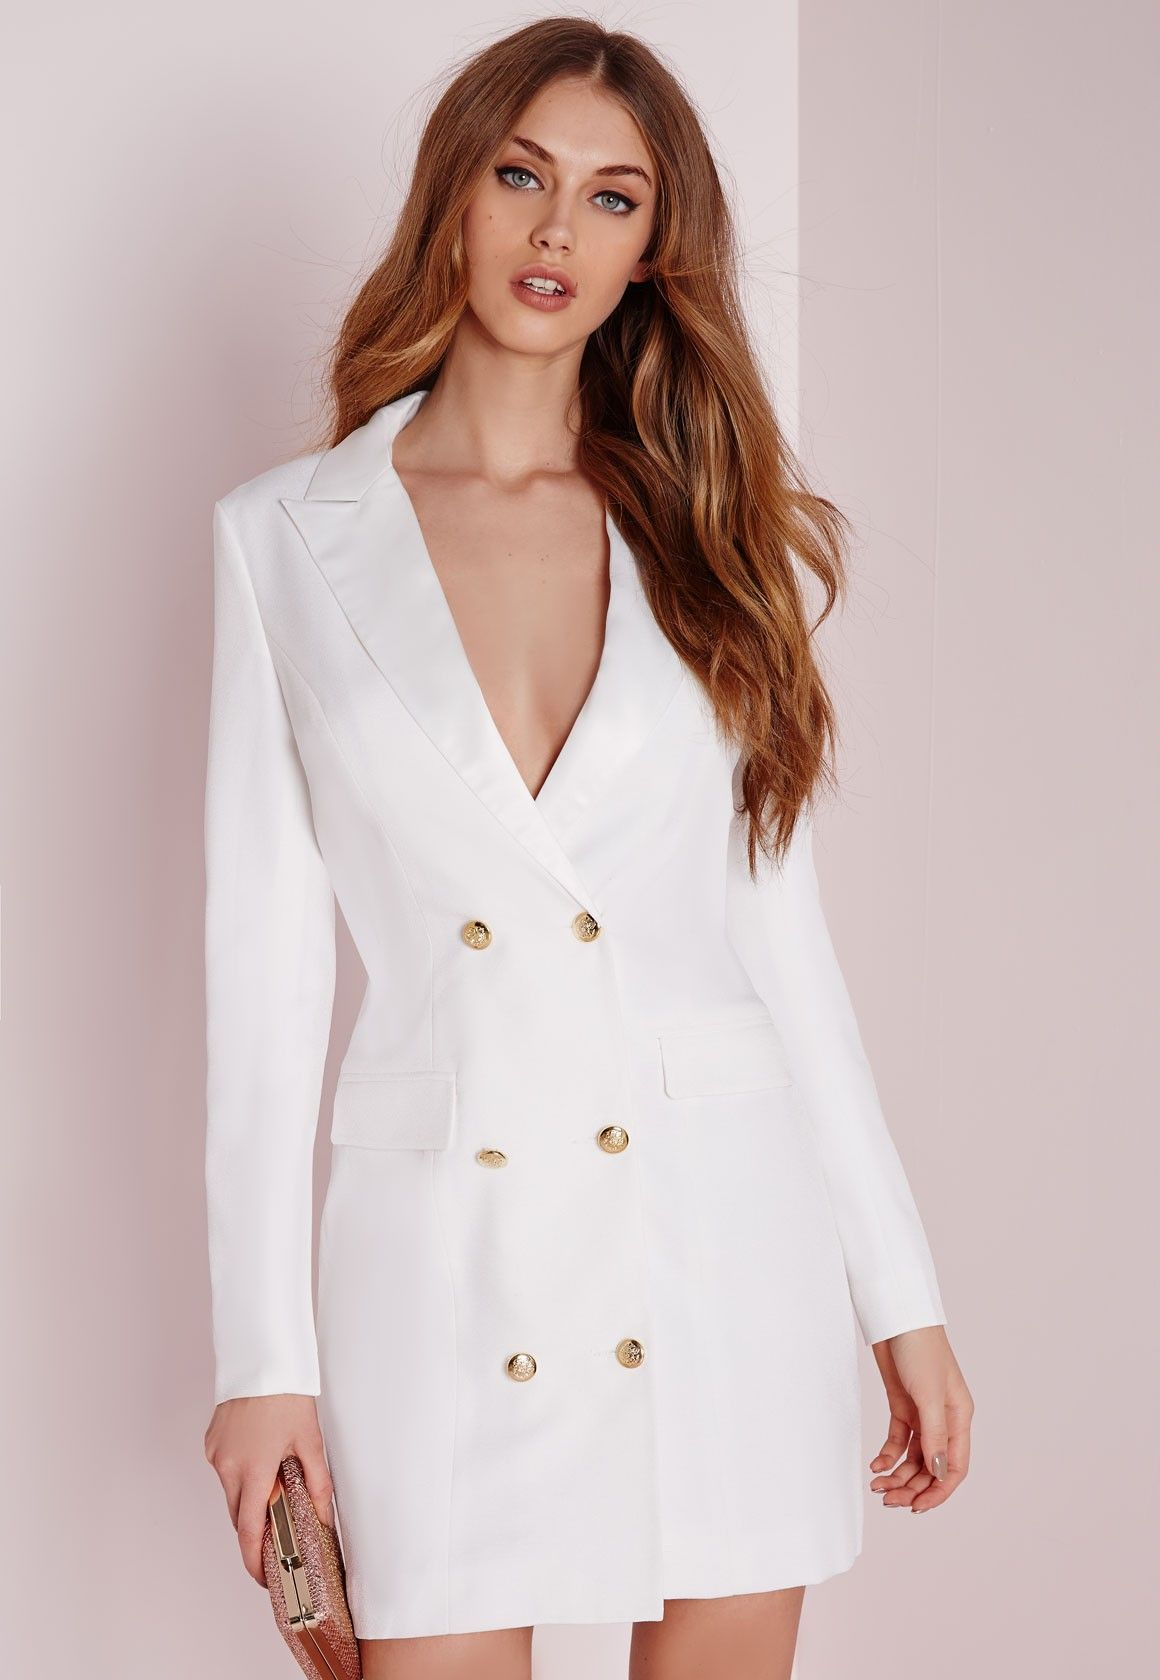 50e3994512a Missguided - long sleeve tuxedo dress white